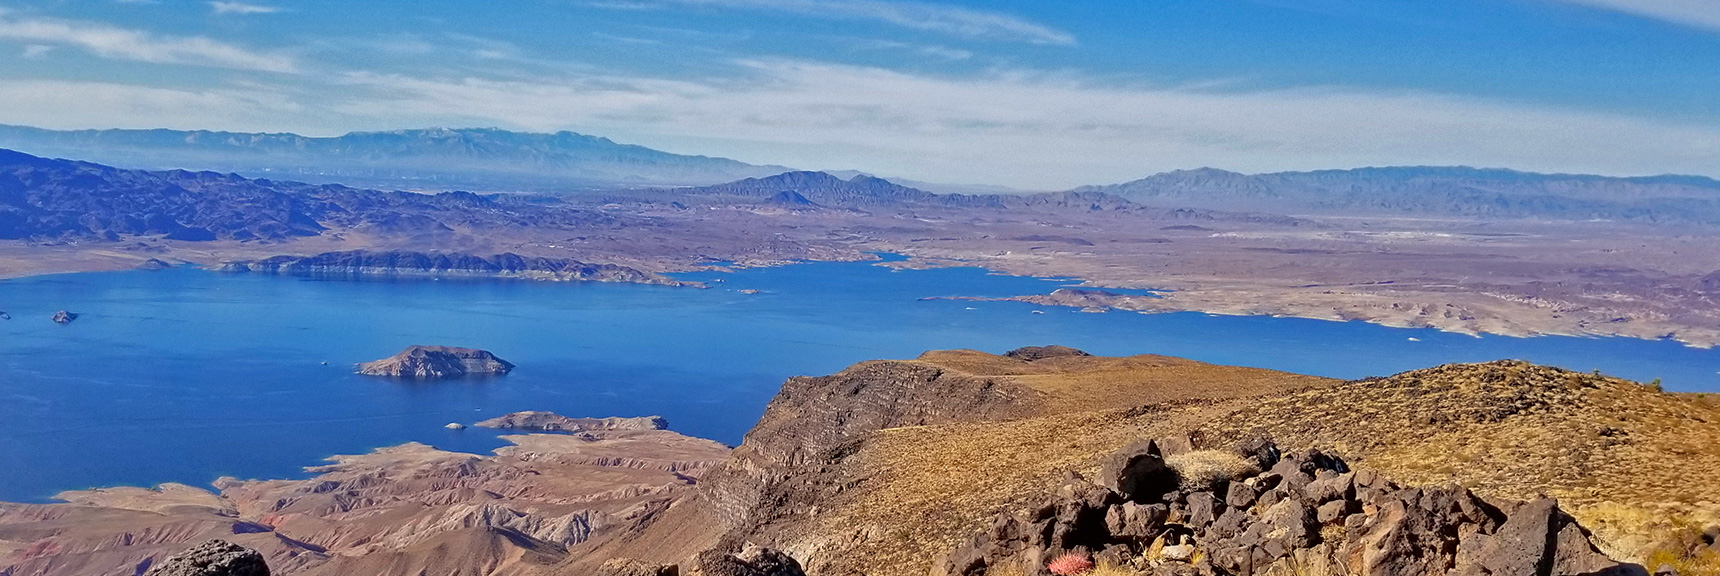 Lave Butte from Fortification Hill Summit, Frenchman Mountain in Background | Lava Butte | Lake Mead National Recreation Area, Nevada |